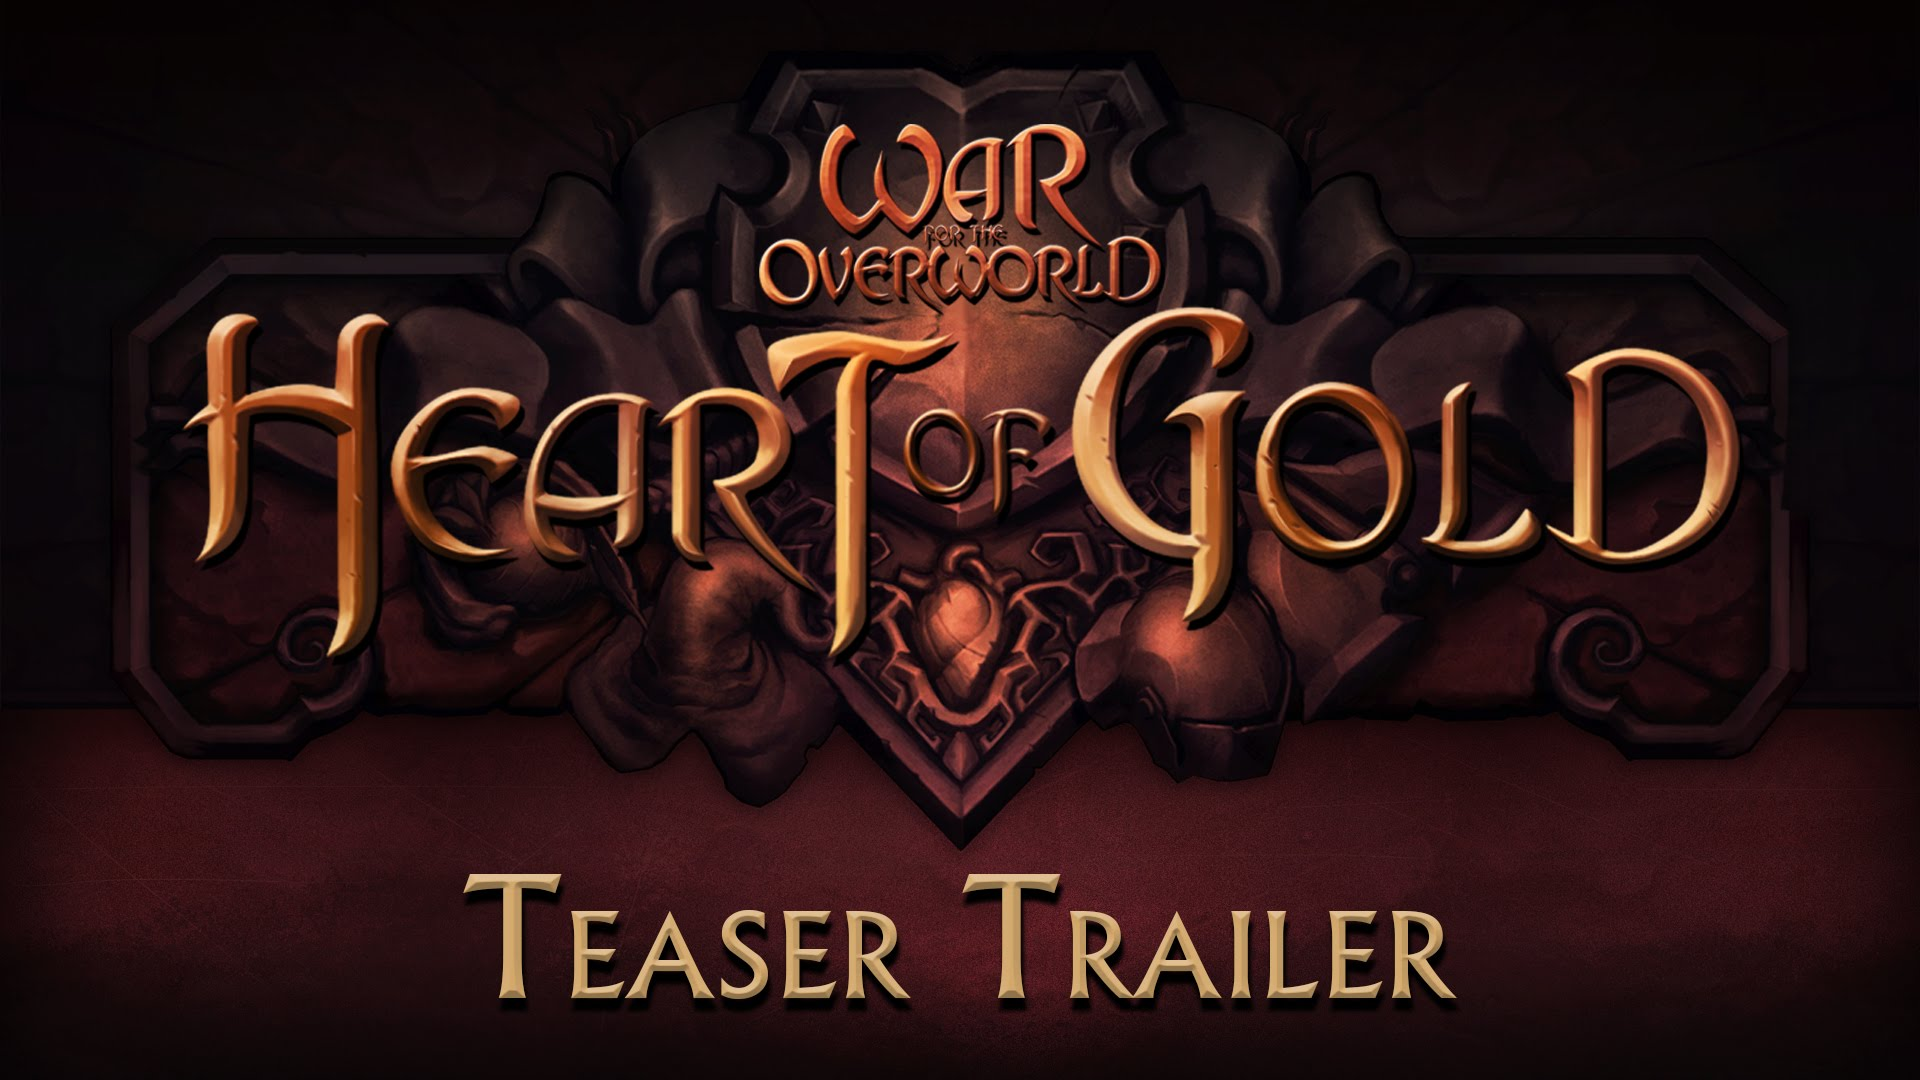 War for the Overworld - Heart of Gold - Teaser Trailer